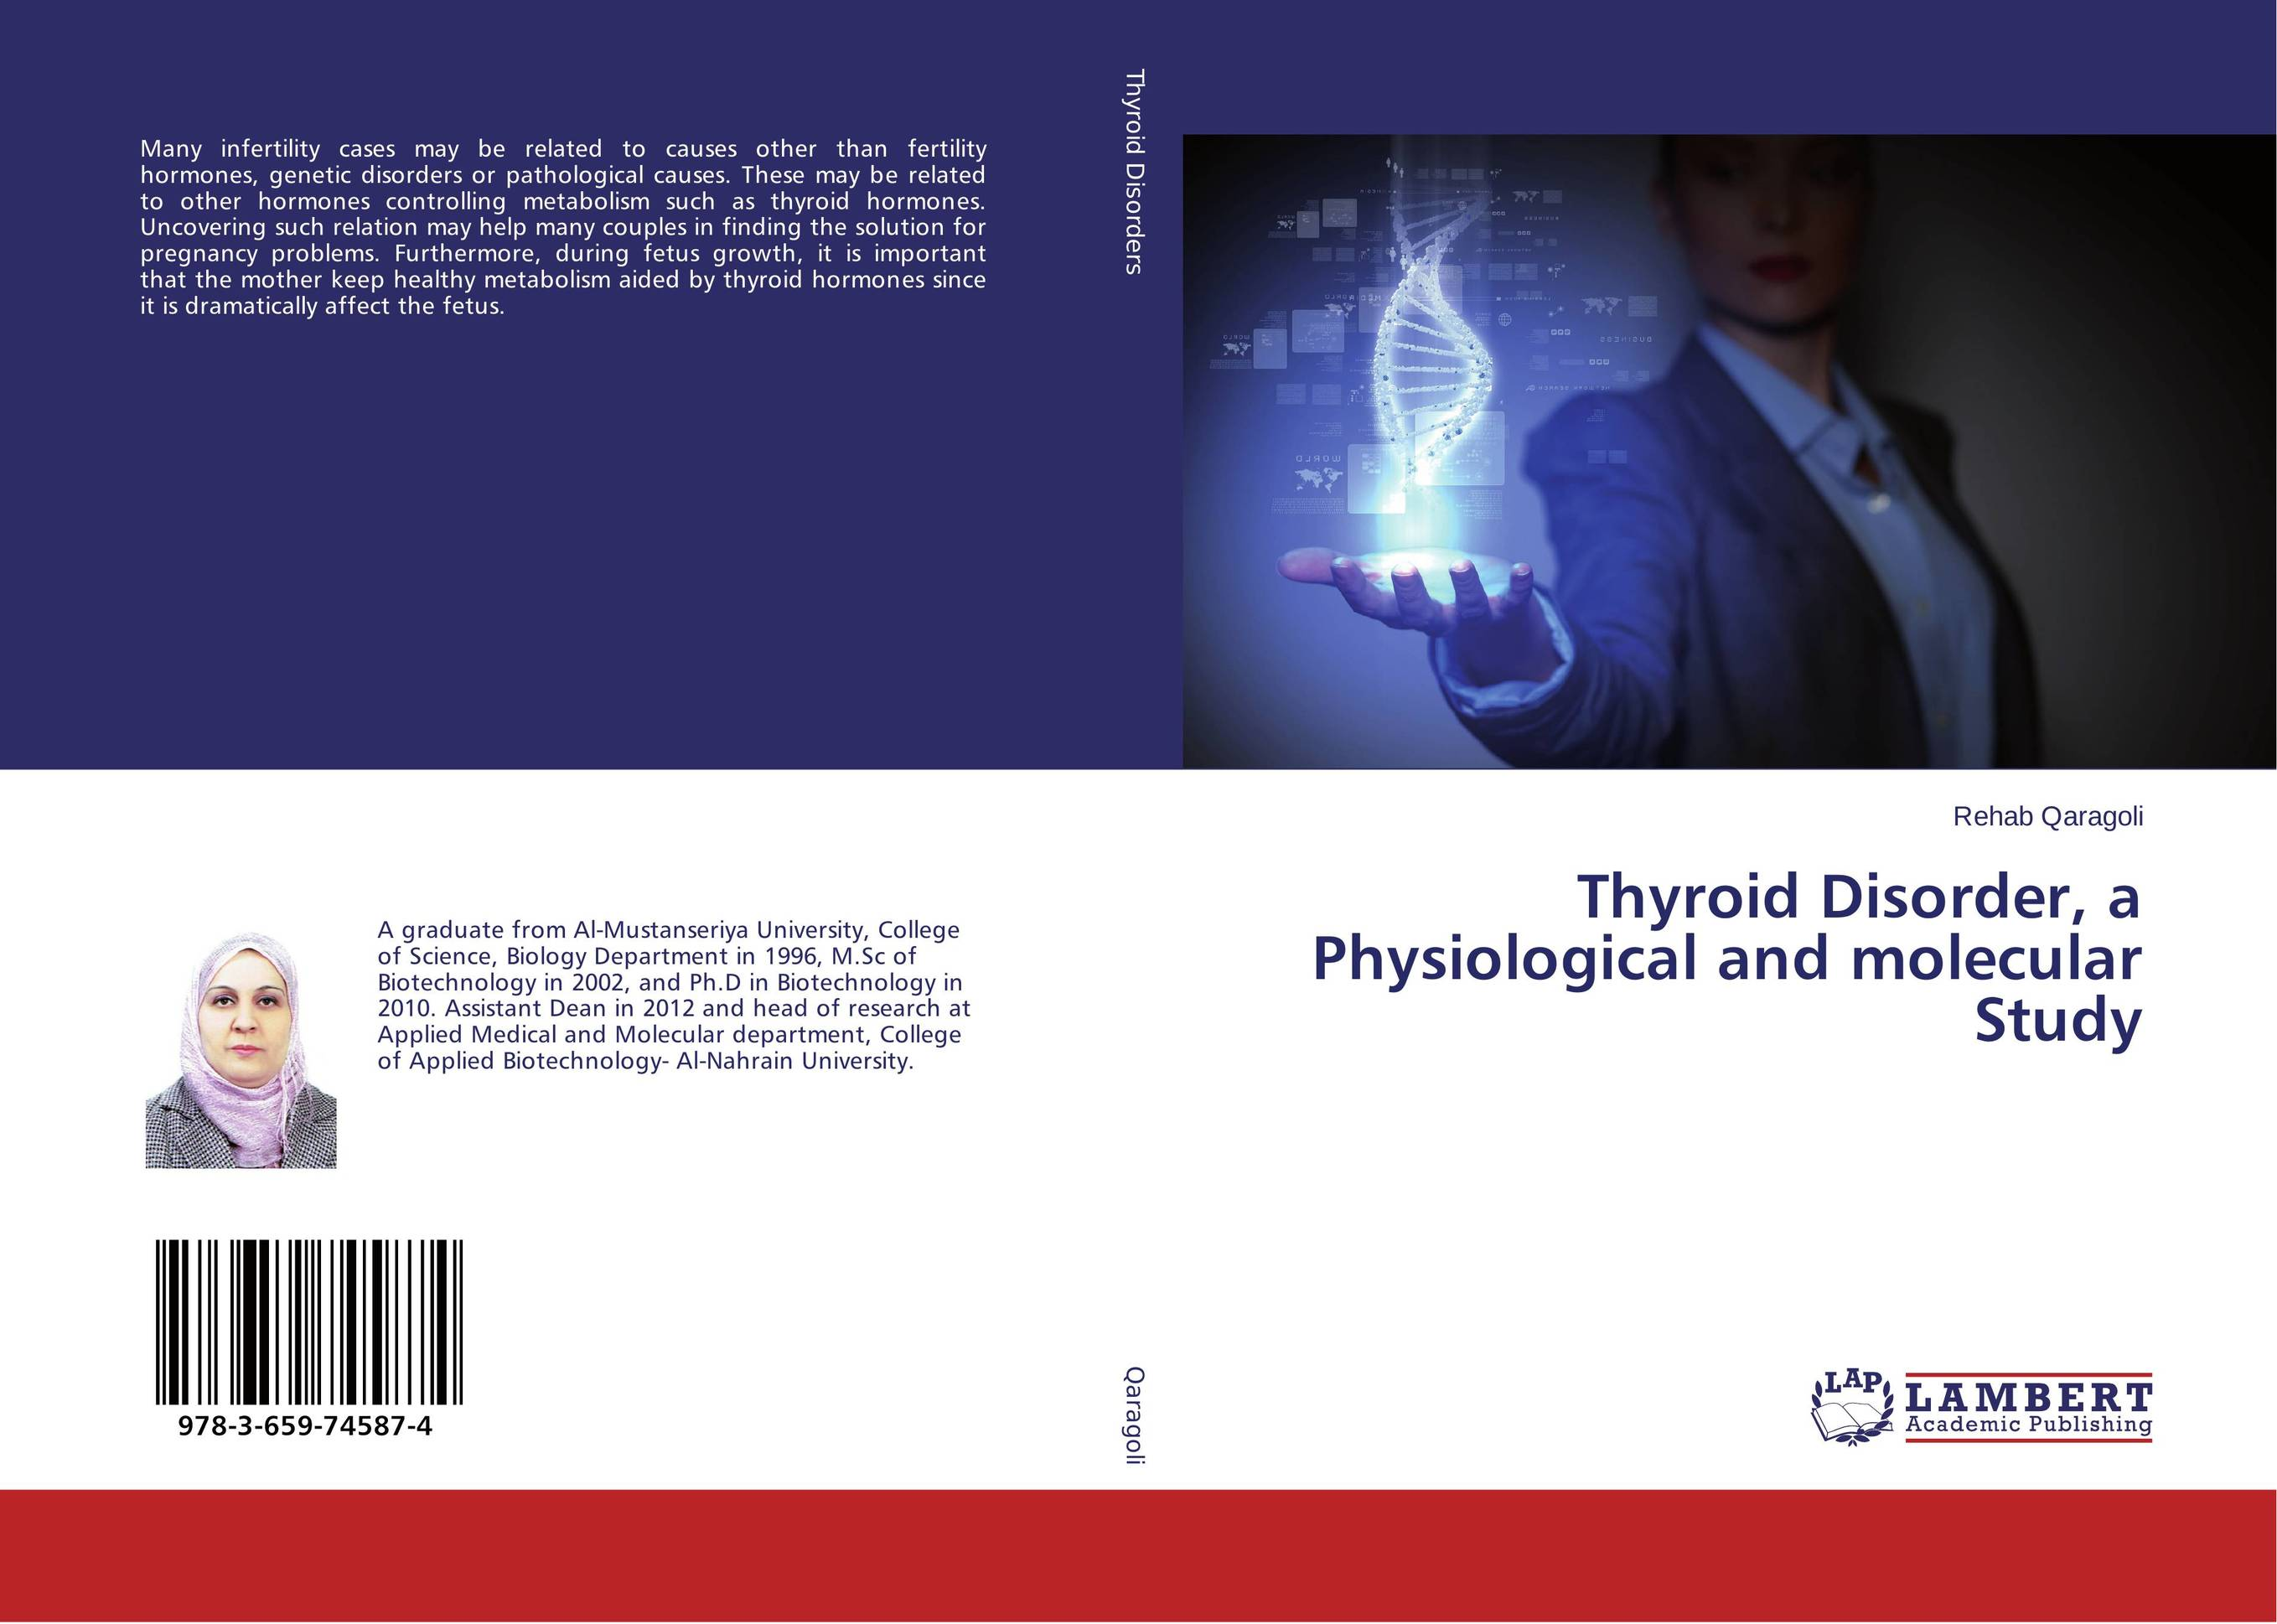 Thyroid Disorder, a Physiological and molecular Study overcoming infertility